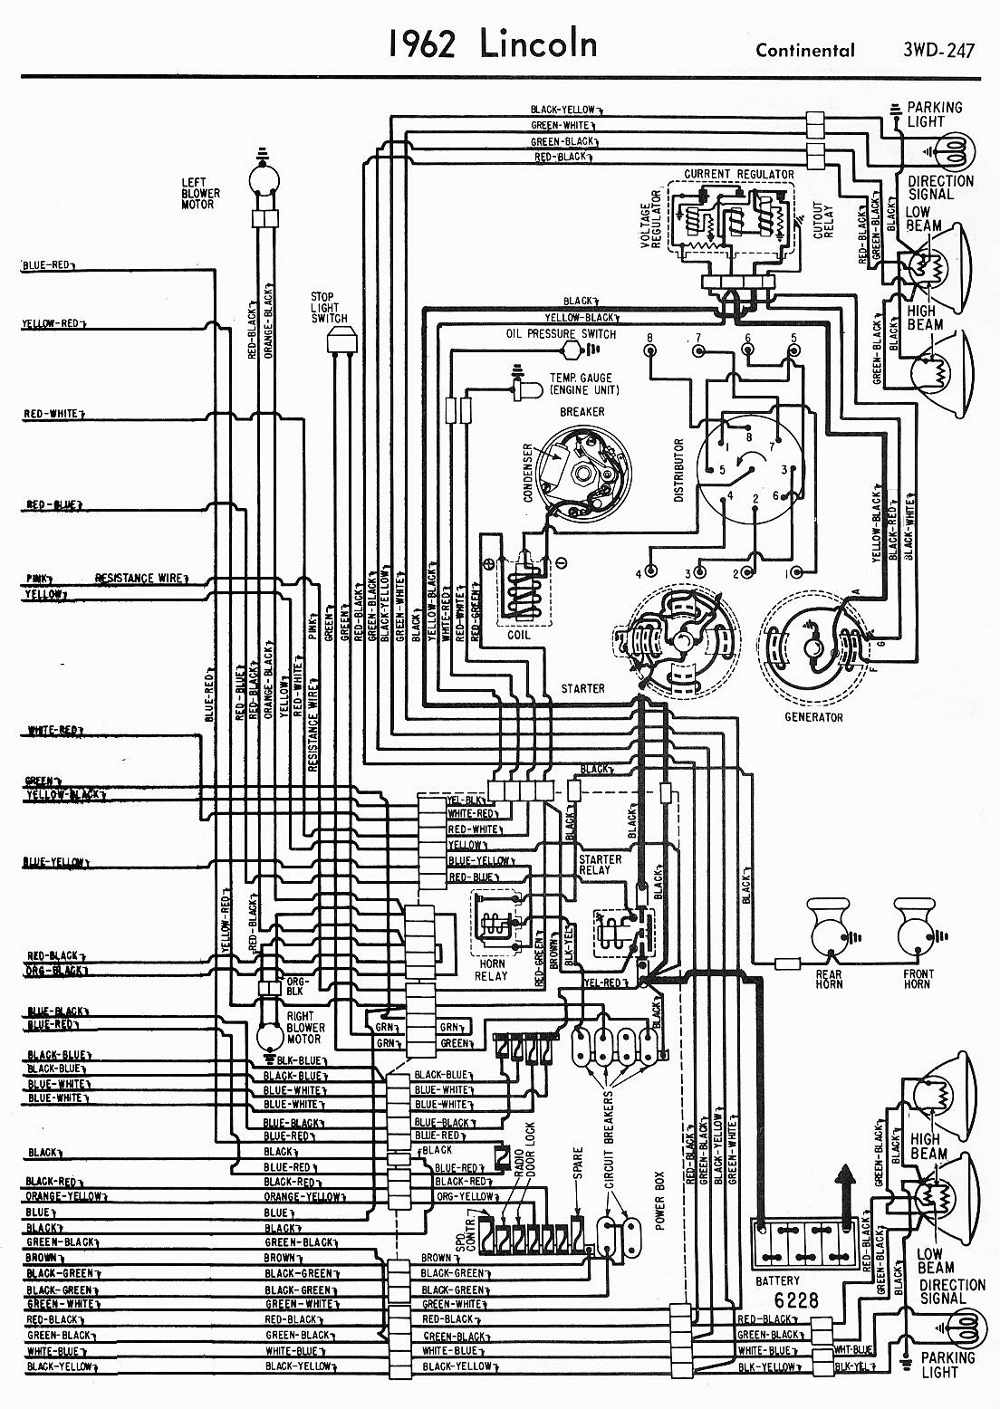 2000 Lincoln Continental Engine Diagram